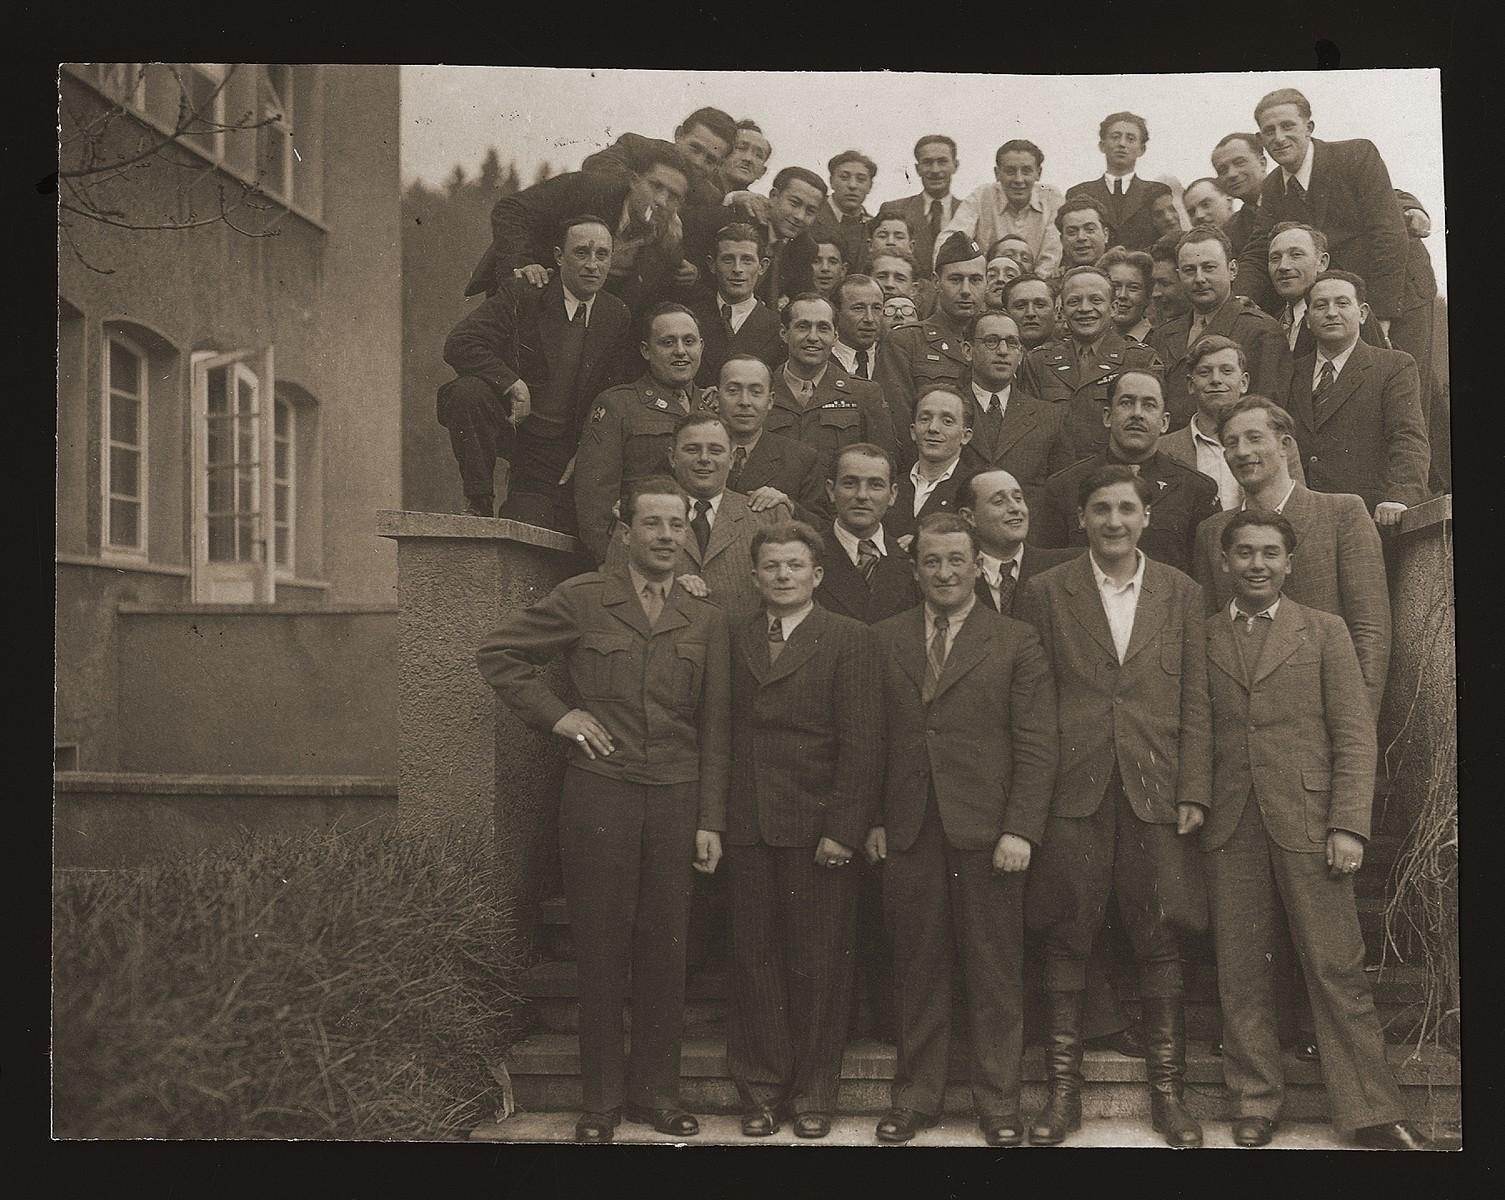 Group portrait of Jewish DPs and American soldiers at the Heidenheim displaced persons camp. Leon Kliot (Klott) is standing on the far right, third from the top.